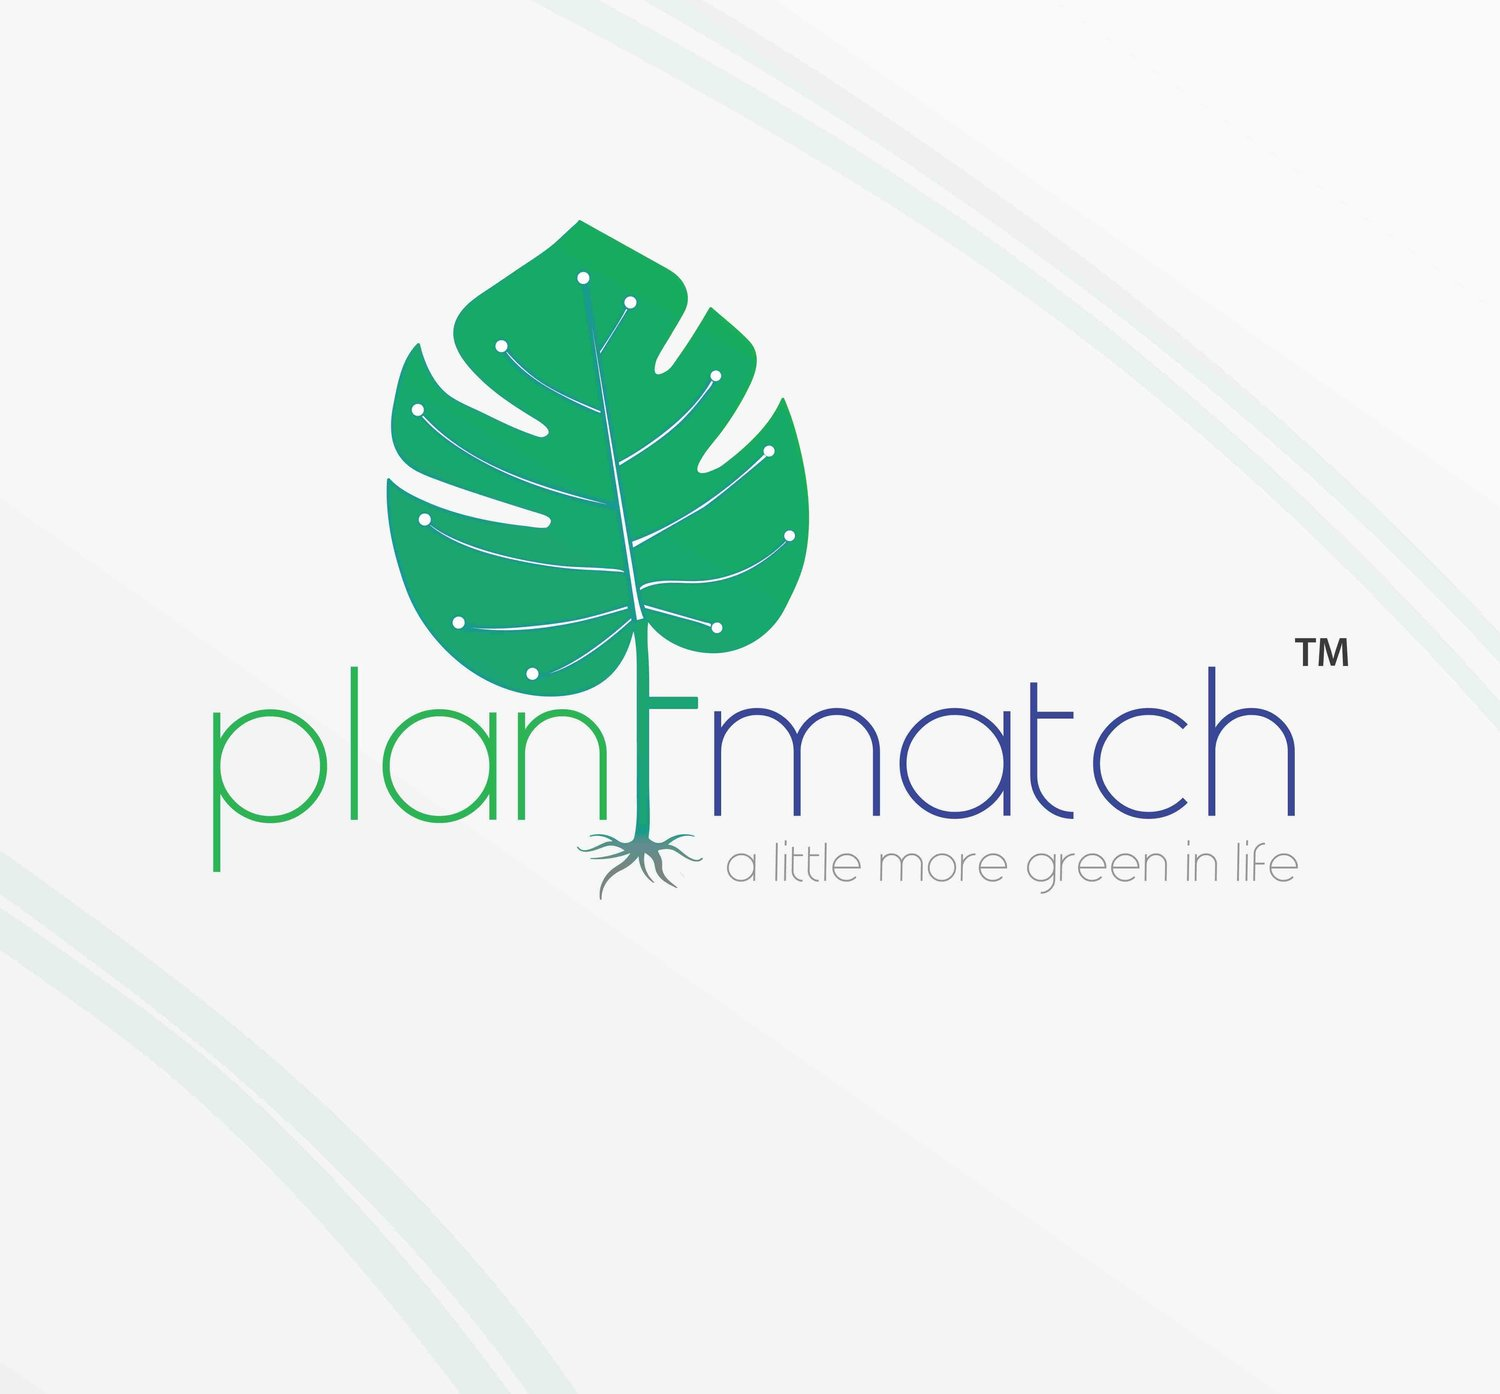 Plantmatch.co